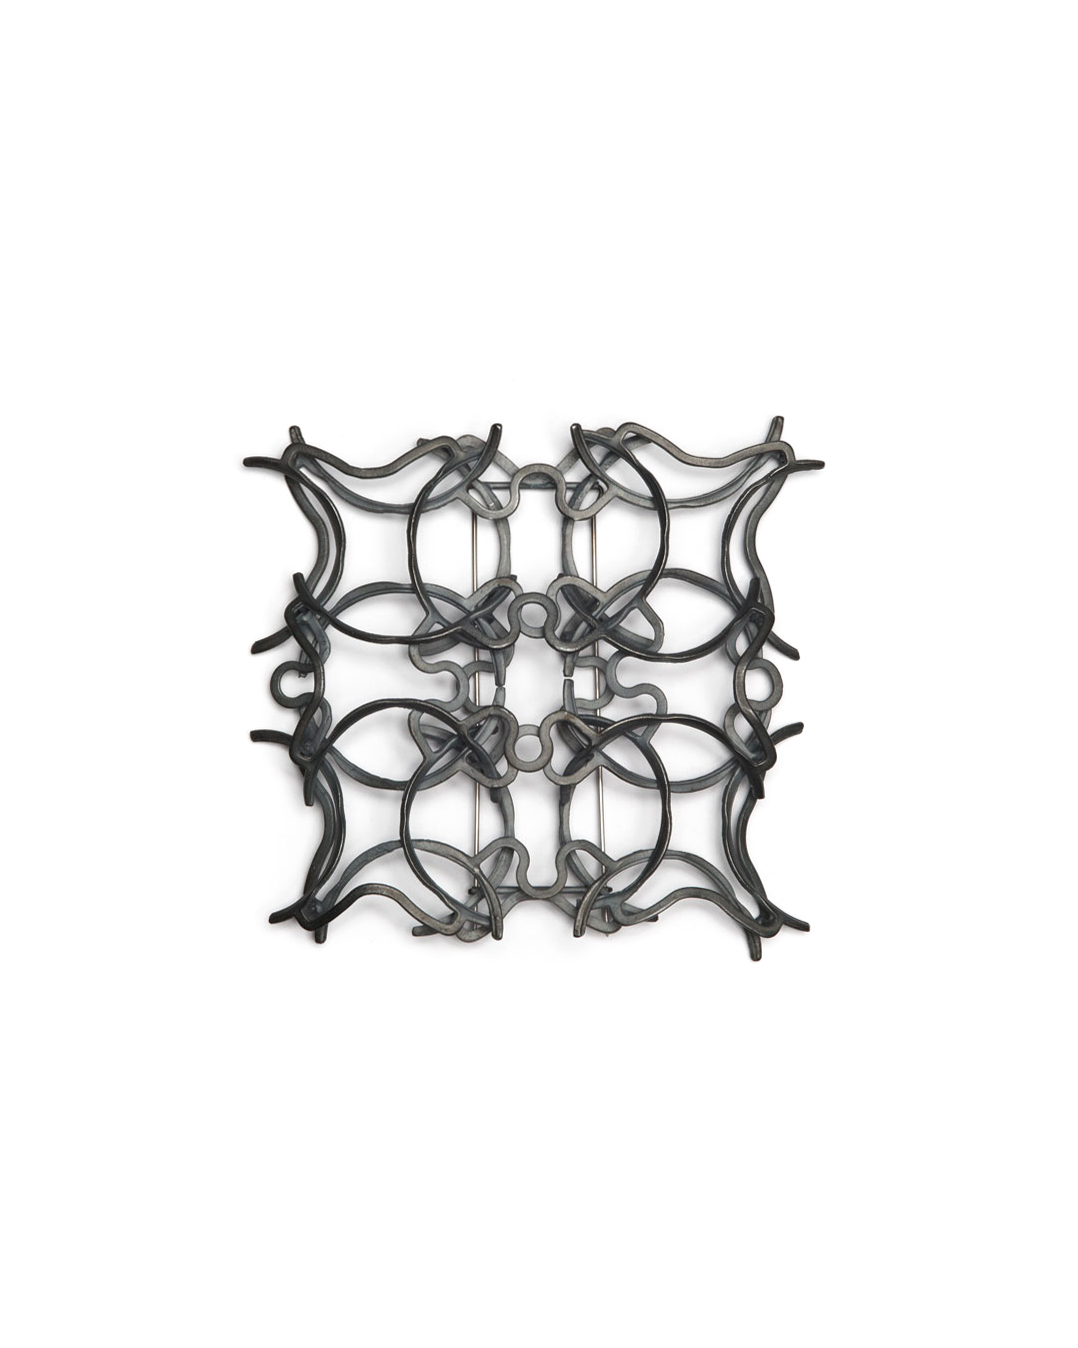 Winfried Krüger, untitled, 1995, brooch; oxidised silver, 80 x 90 mm, €1210